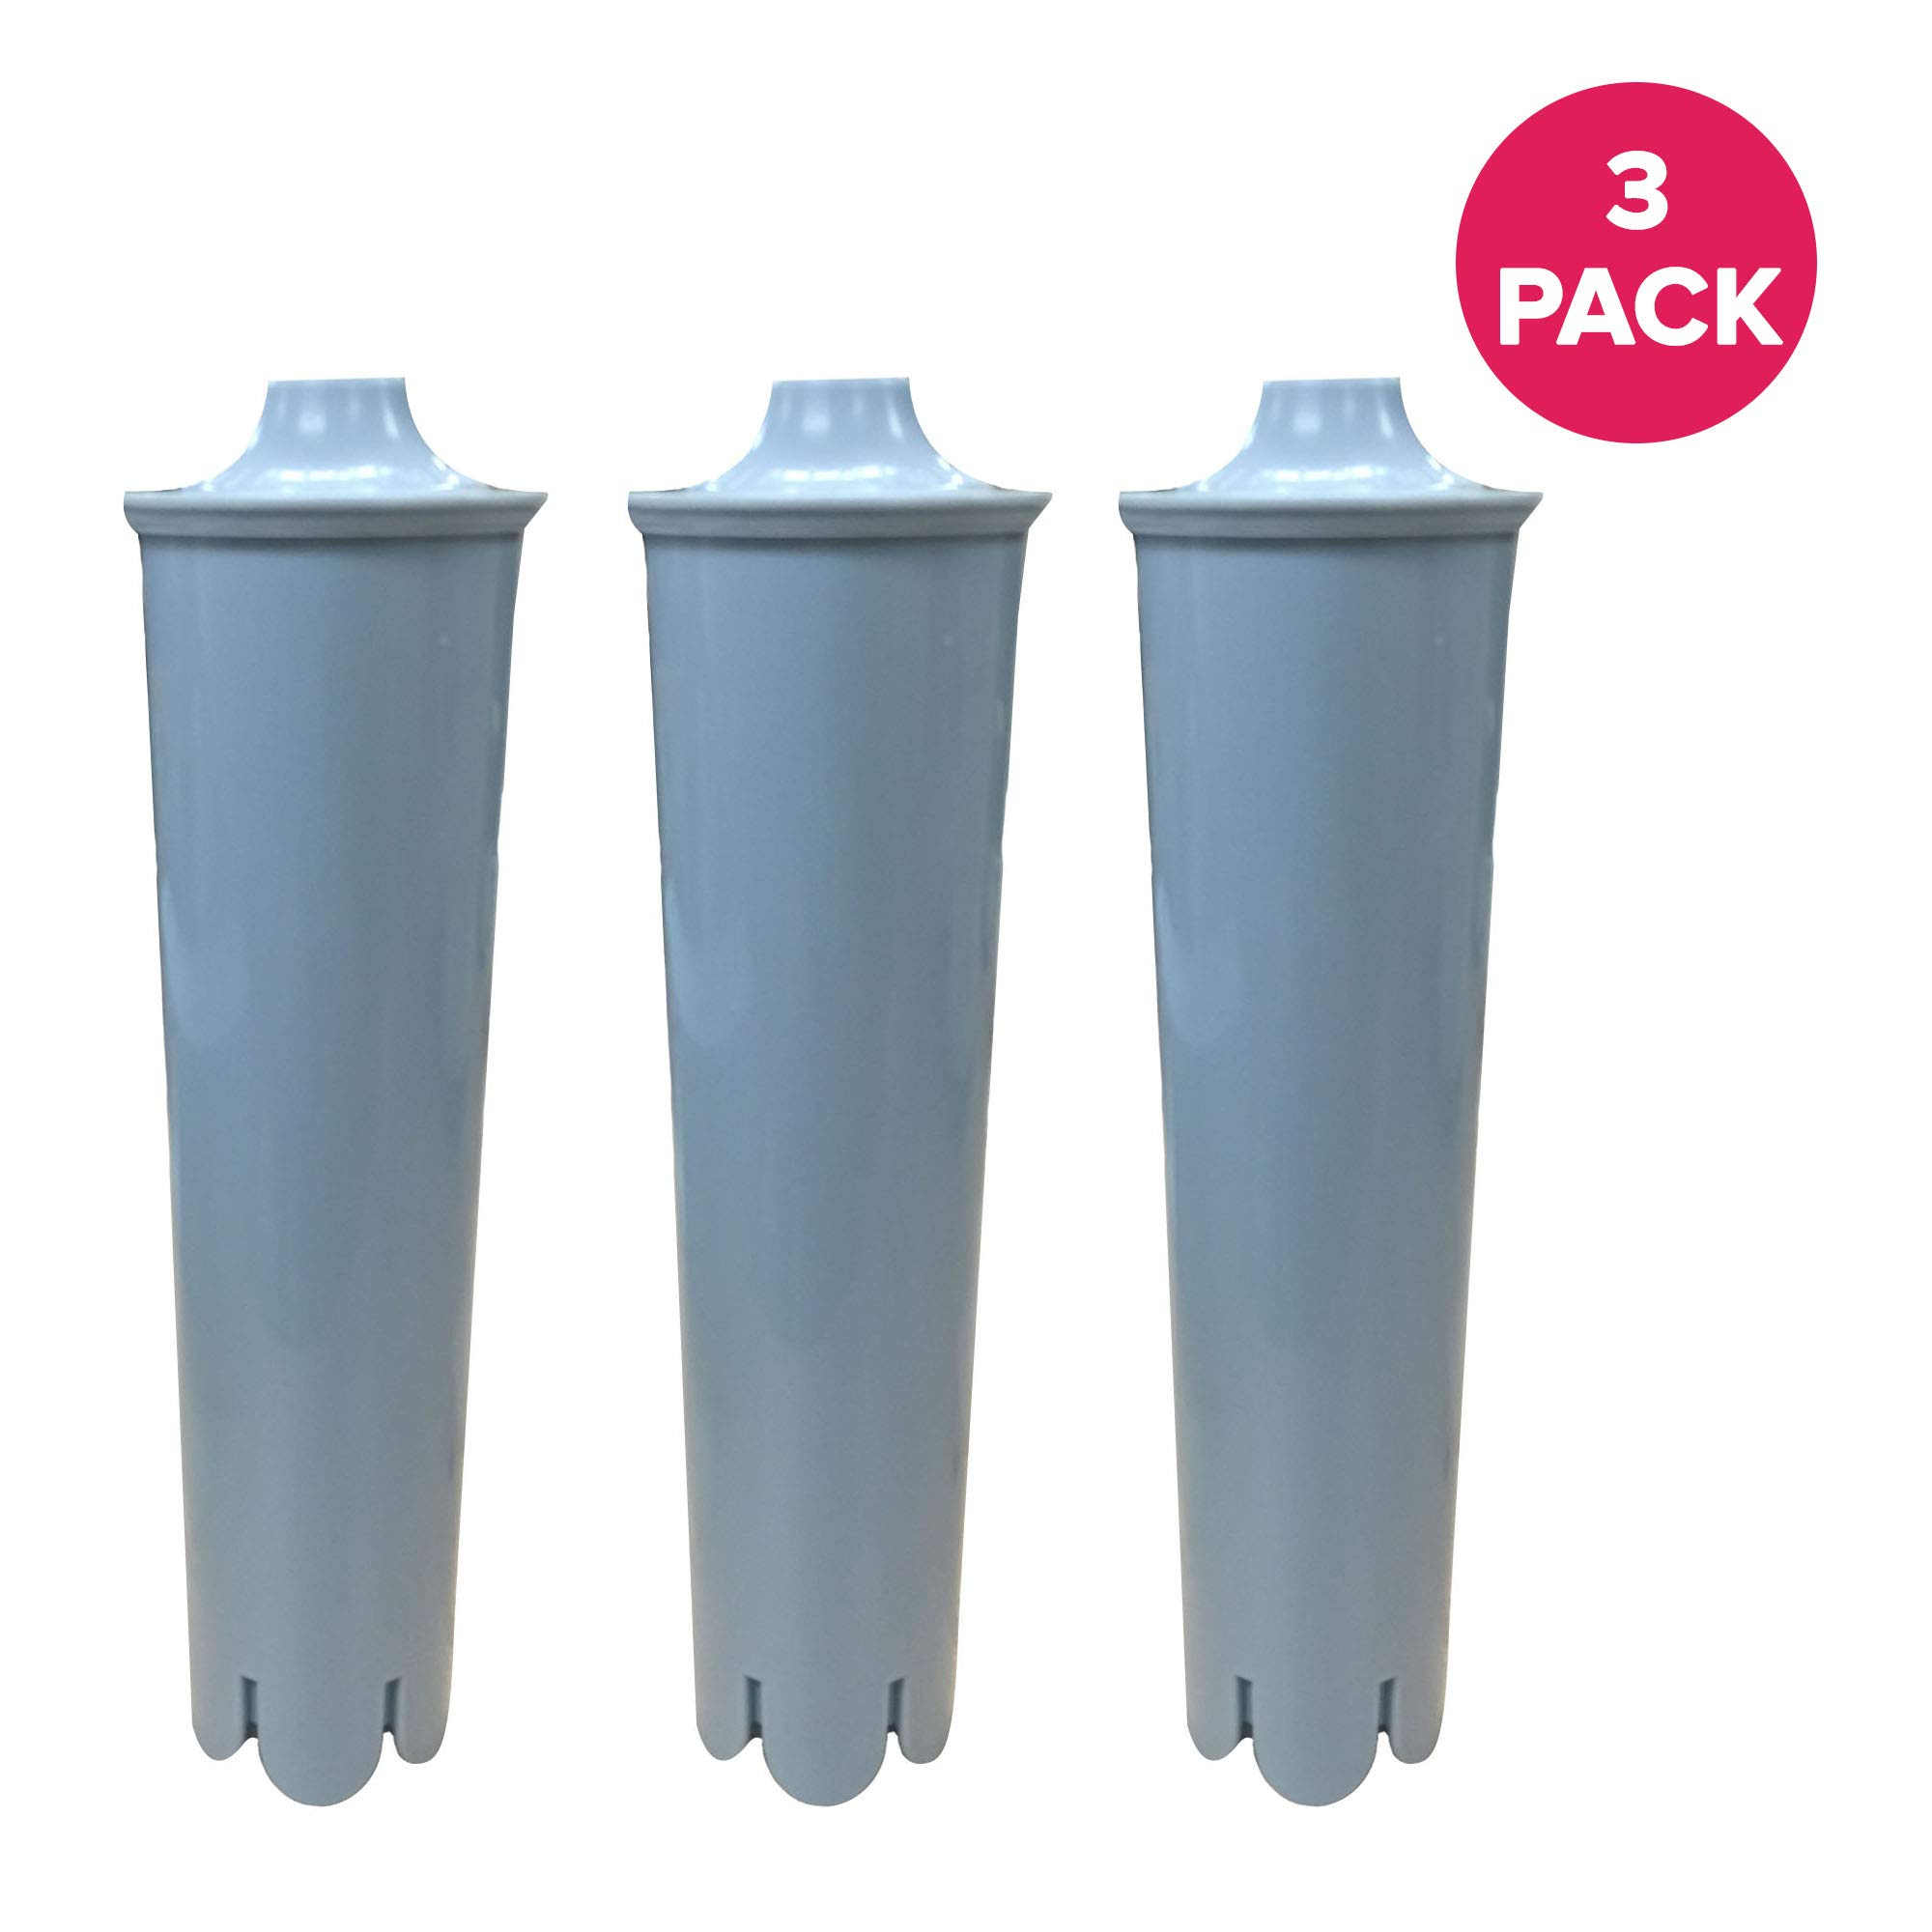 Think Crucial Replacement for Jura Clearyl Blue Water Filter, Fits Coffee Machines ENA3, ENA4, ENA5, J6, J9, J95, Compatible With Part # 67879 (3 Pack)